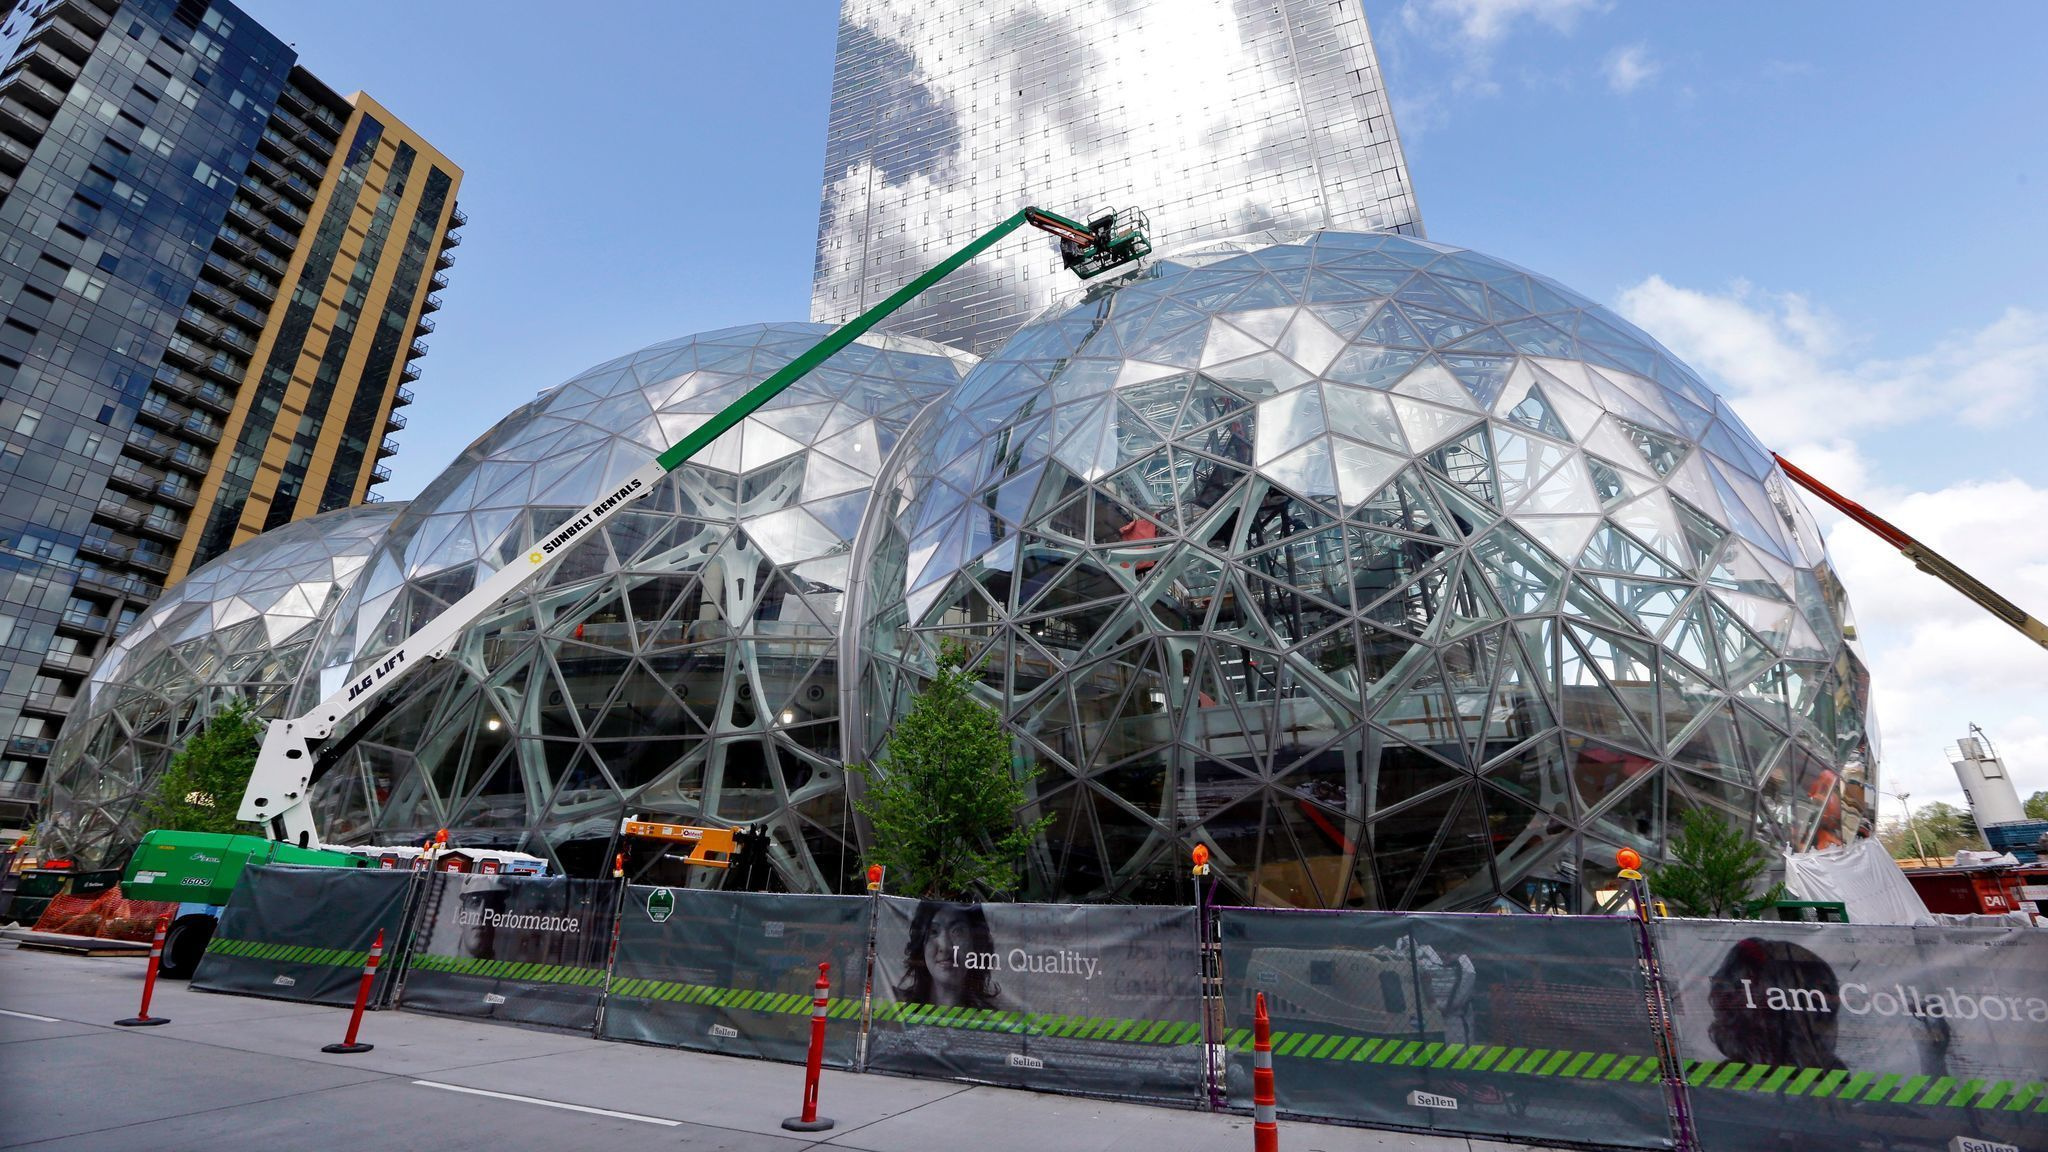 How Chicago Can Lure Amazon Ban Employment Noncompete Agreements